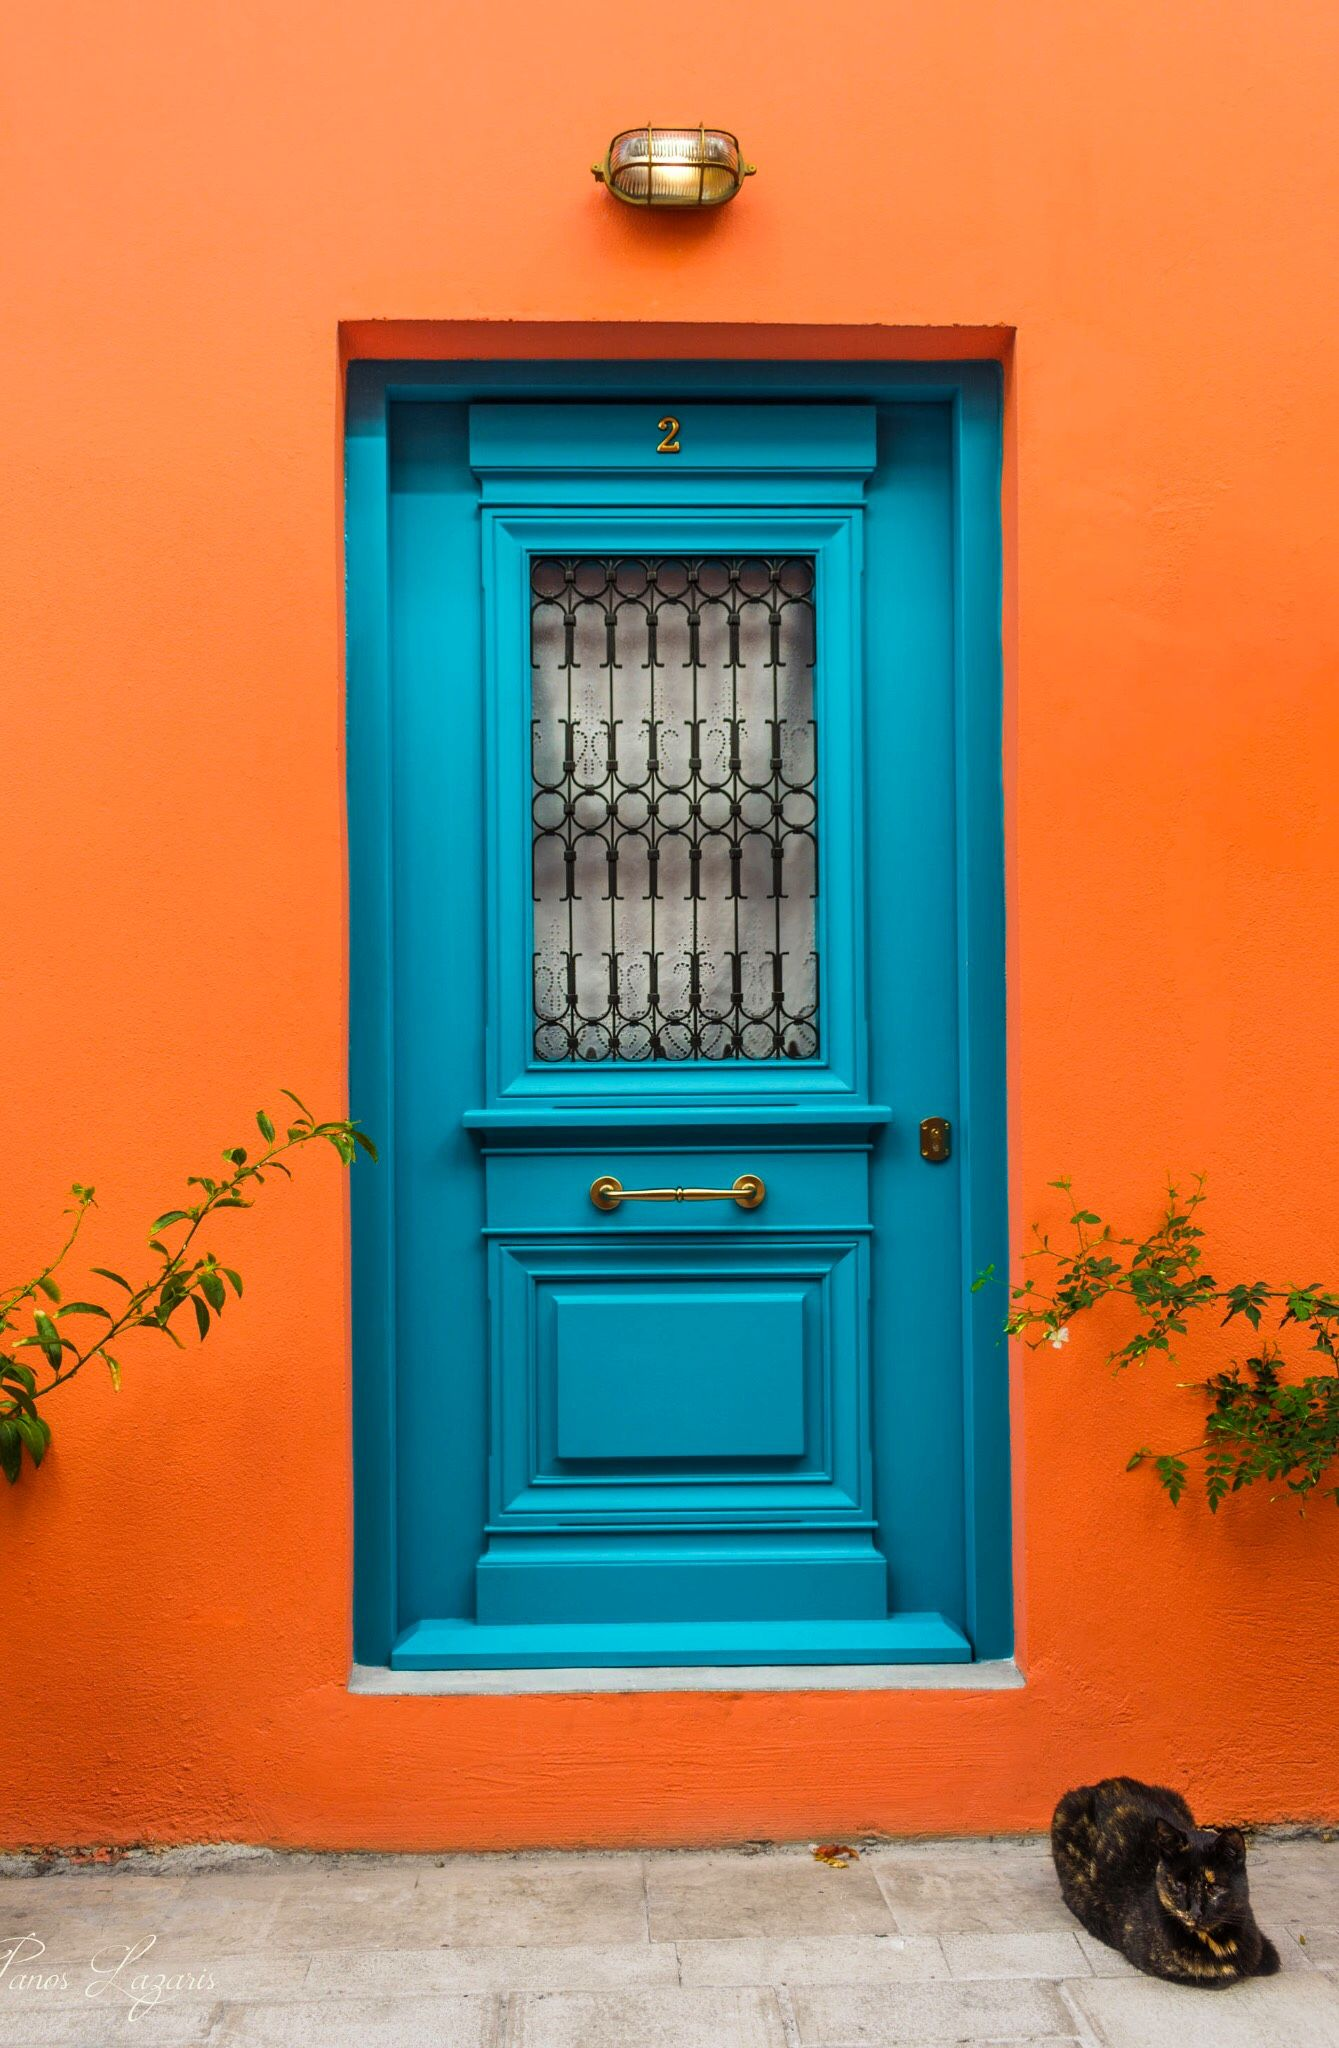 Lefkada Greece Enter here Pinterest Doors Gates and Architecture